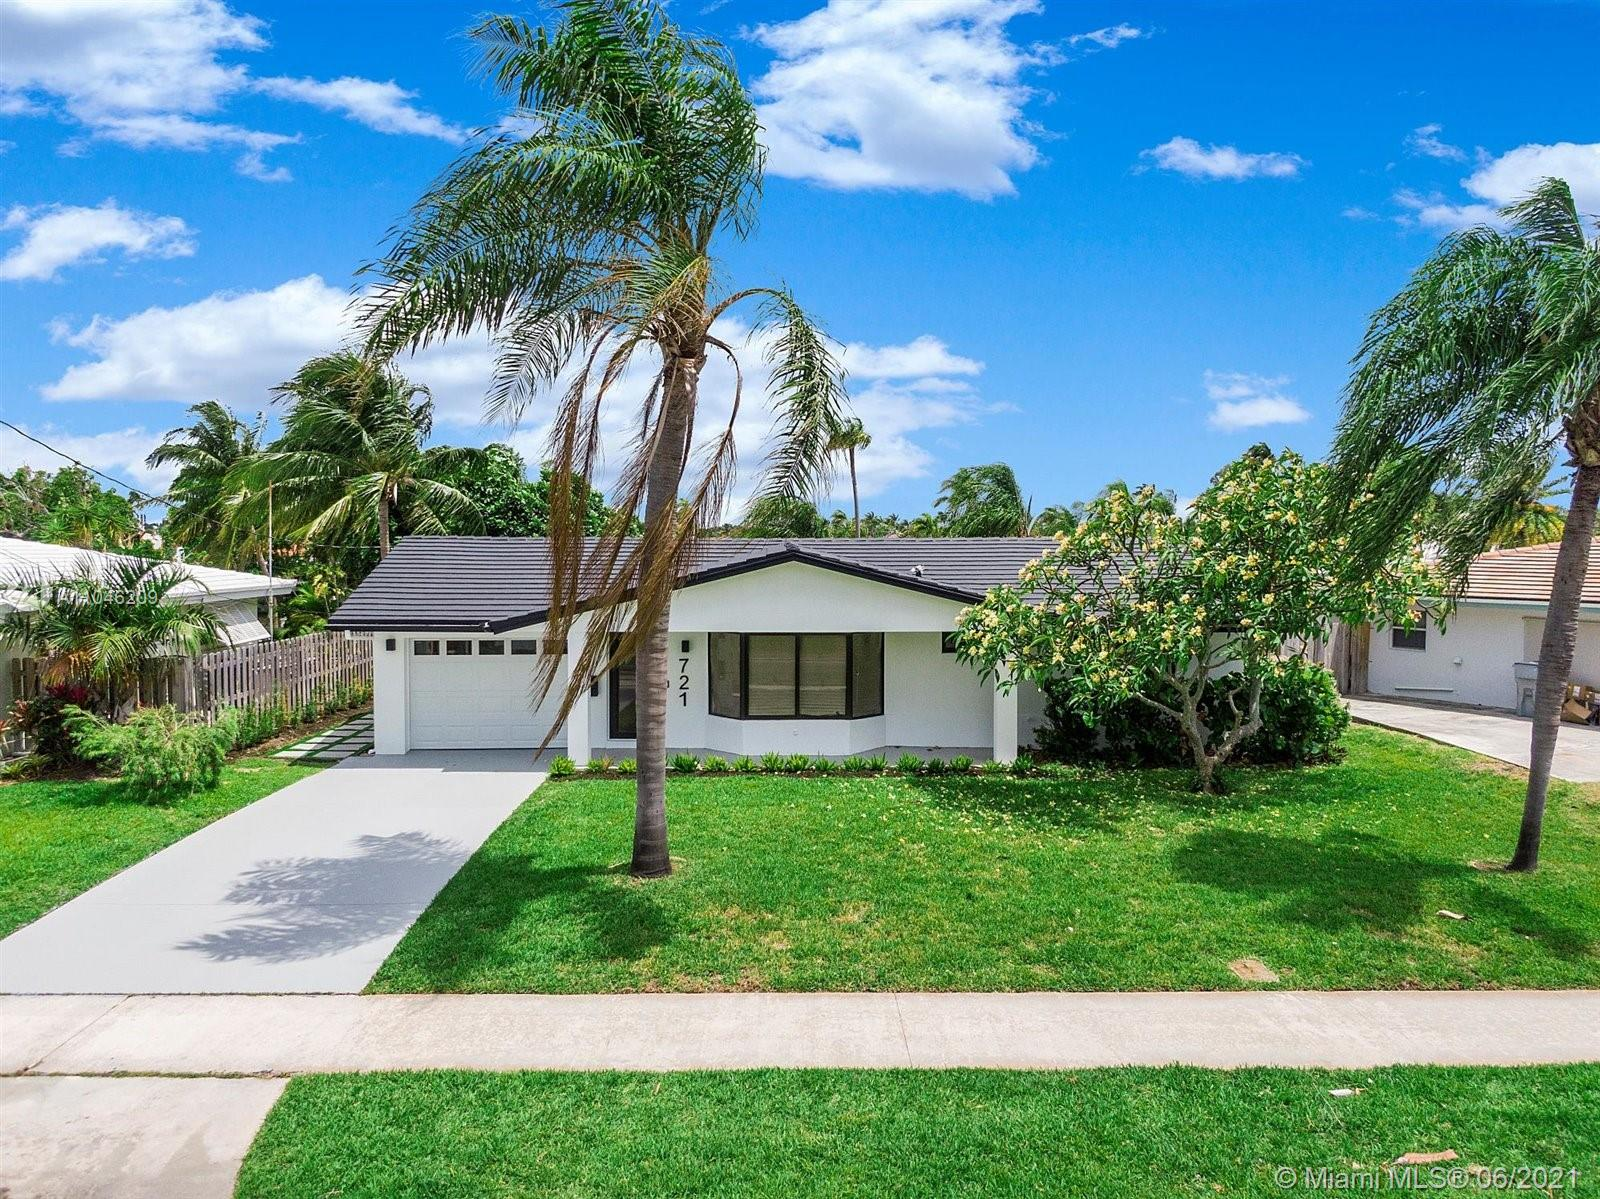 Beautifully renovated, modernized canal front house with stunning views! This boaters paradise, gorgeous home rests at the end of a canal with approximately 40' concrete seawall with easy ocean access! 3 full baths and 2 of the 3 bedrooms are masters with canal views and backyard access. Room for pool in backyard! This complete smart home features in-Ceiling Home Theater Speaker System, Nest thermostat, Ring video doorbell & LED lighting throughout. All new impact resistant doors, windows & garage door is installed. Stay cool & comfortable with air conditioned, smart garage including a new washer & dryer. The kitchen is fully upgraded with brand new appliances, cabinets & granite counter tops. Great location in a very desirable neighborhood.